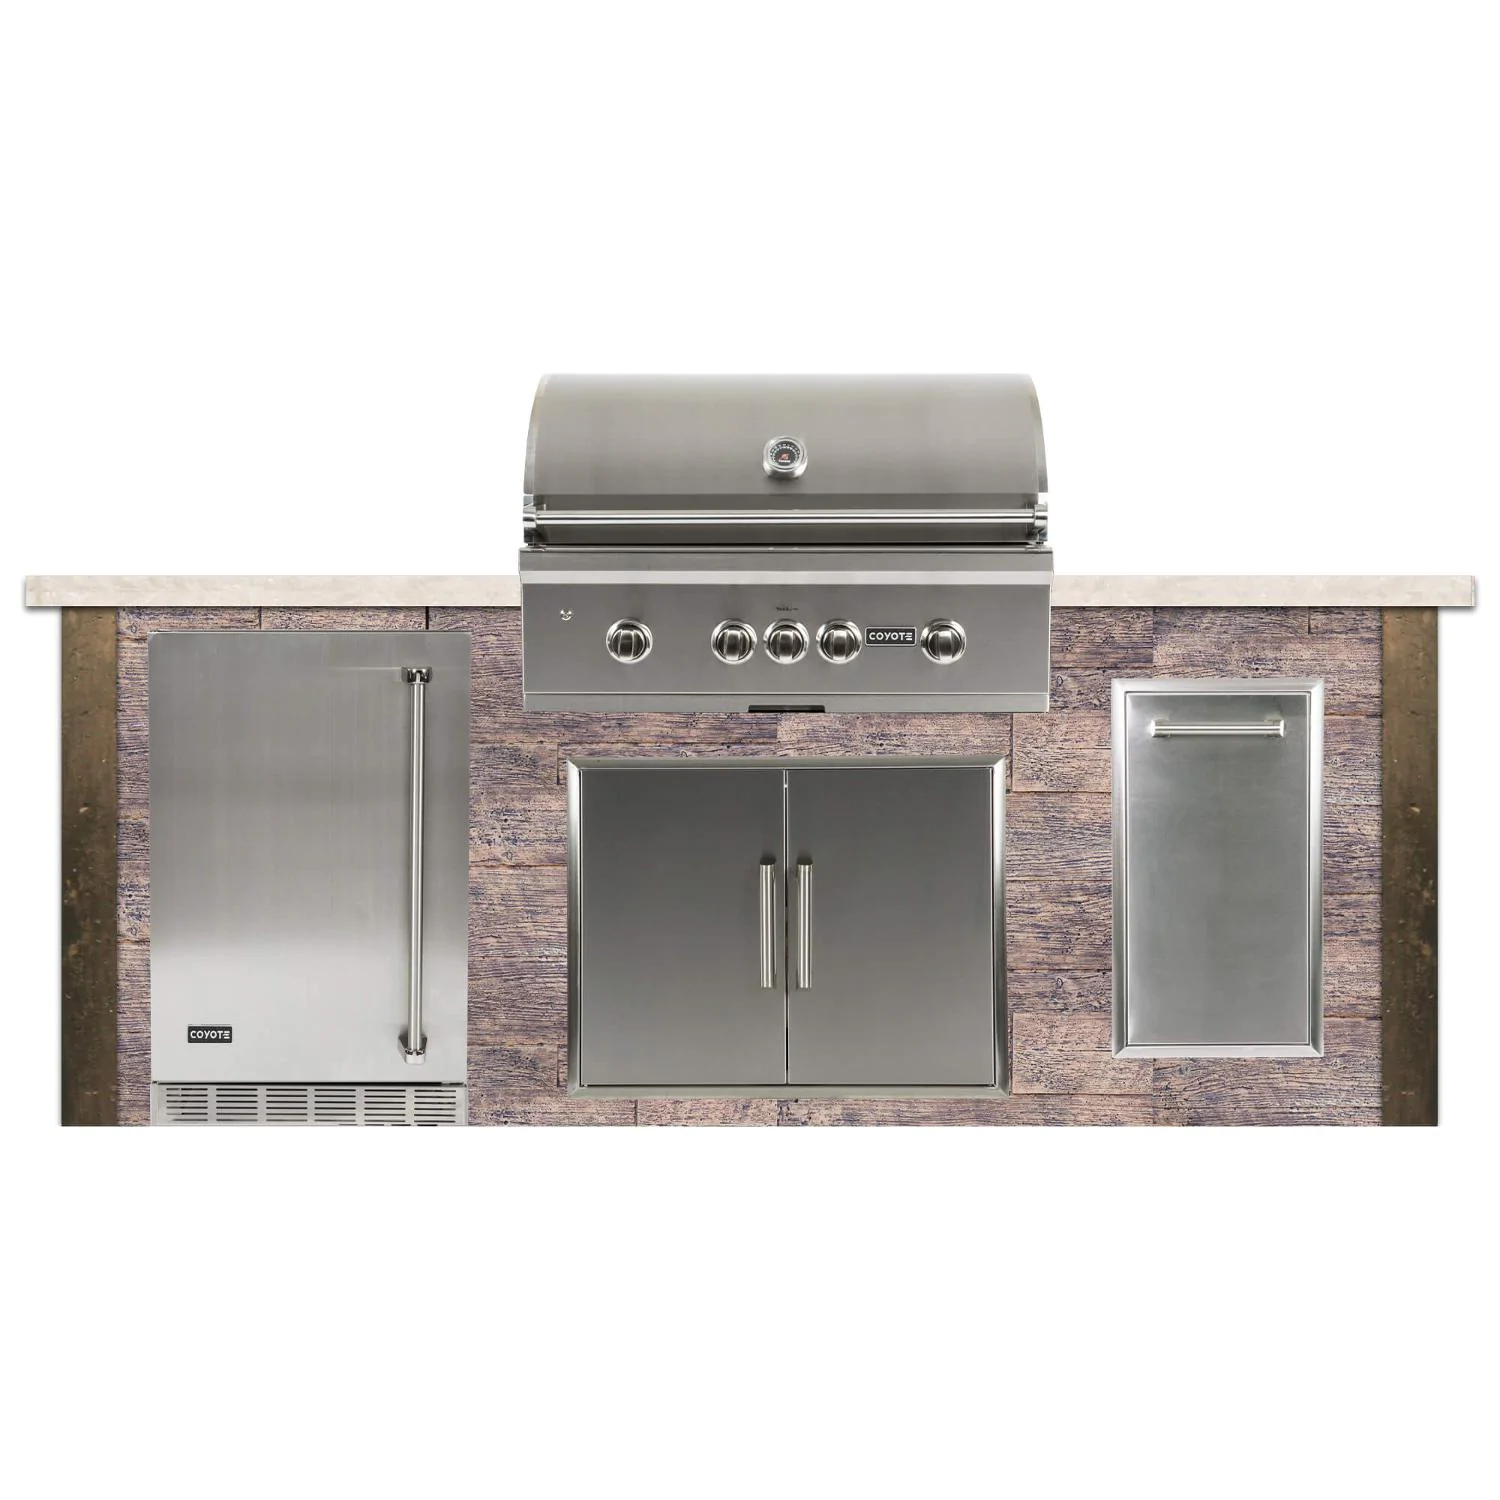 Coyote Ready-To-Assemble 8 Ft Outdoor Kitchen Island With 36-Inch S-Series Natural Gas Grill (Ships As Propane With Conversion Fittings) - Weathered Wood/Brown Terra - RTAC-G8-WB-C2SL36NG